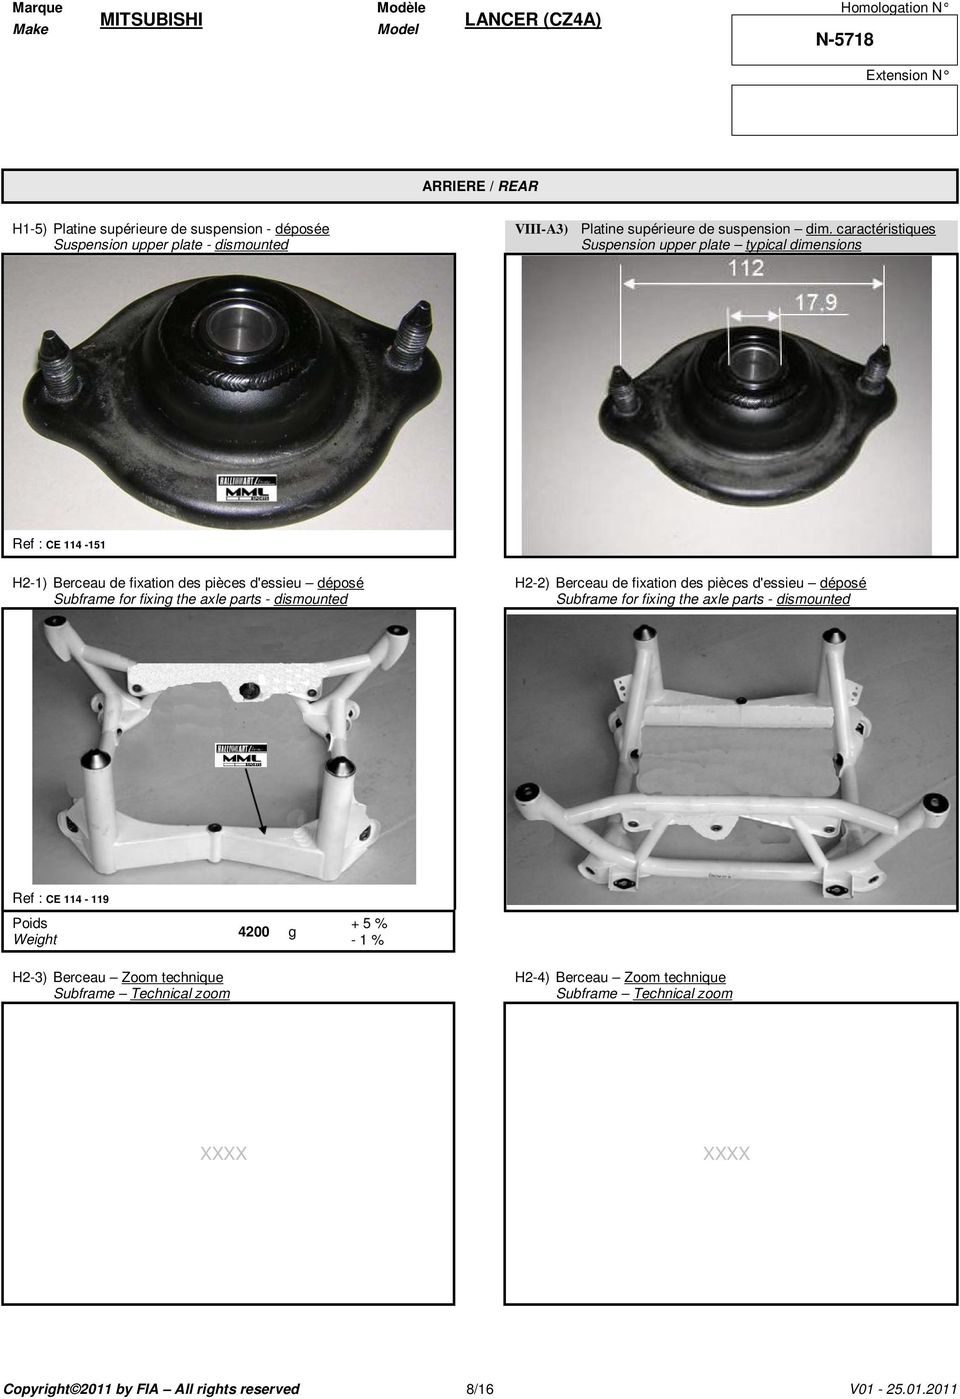 parts - dismounted H2-2) Berceau de fixation des pièces d'essieu déposé Subframe for fixing the axle parts - dismounted Ref : CE 114-119 Poids Weight 4200 g + 5